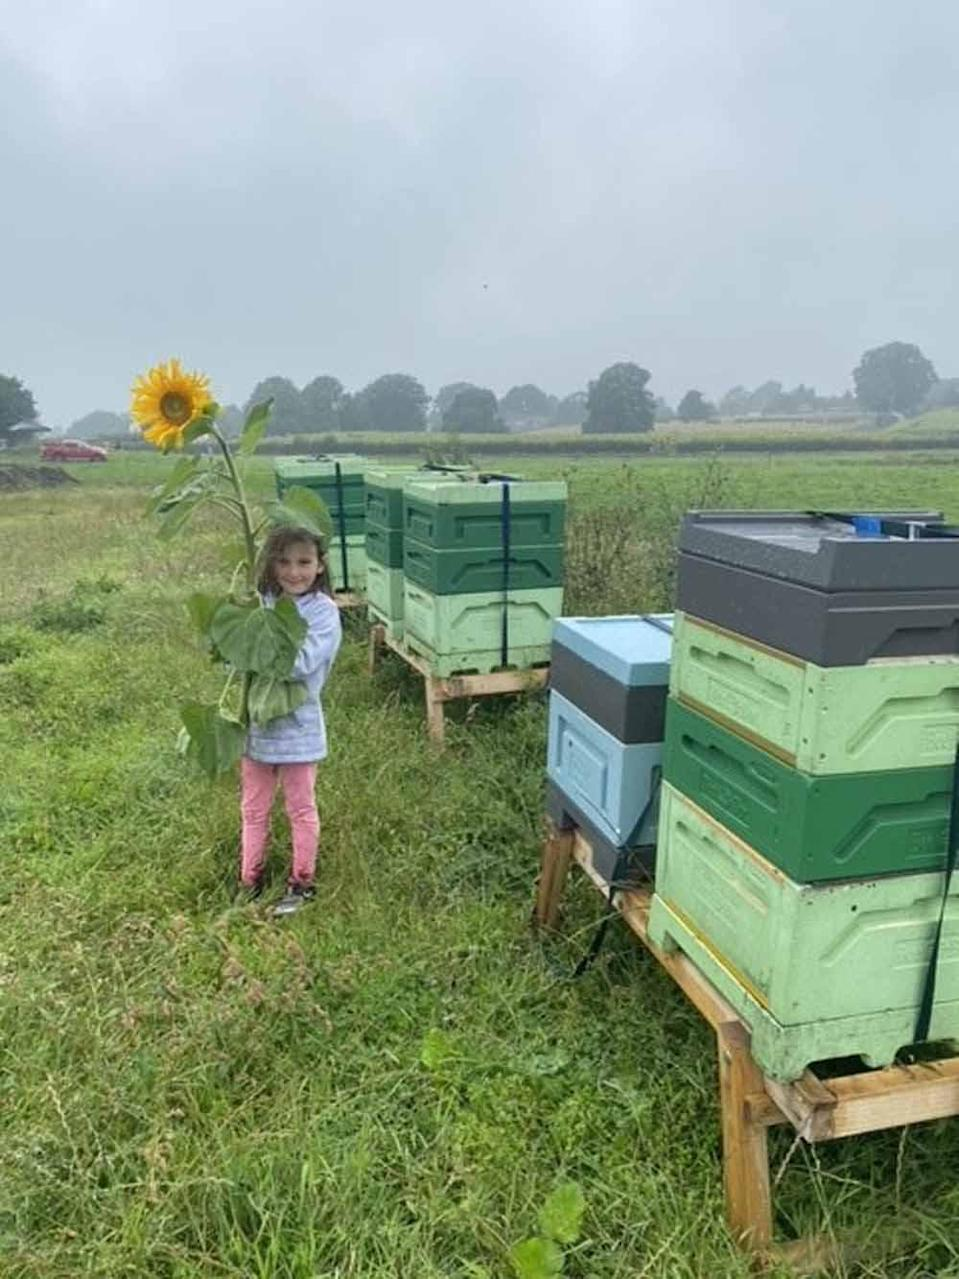 Sally's daughter Chloe, 7, loves raising the bees (Collect / PA Real Life).